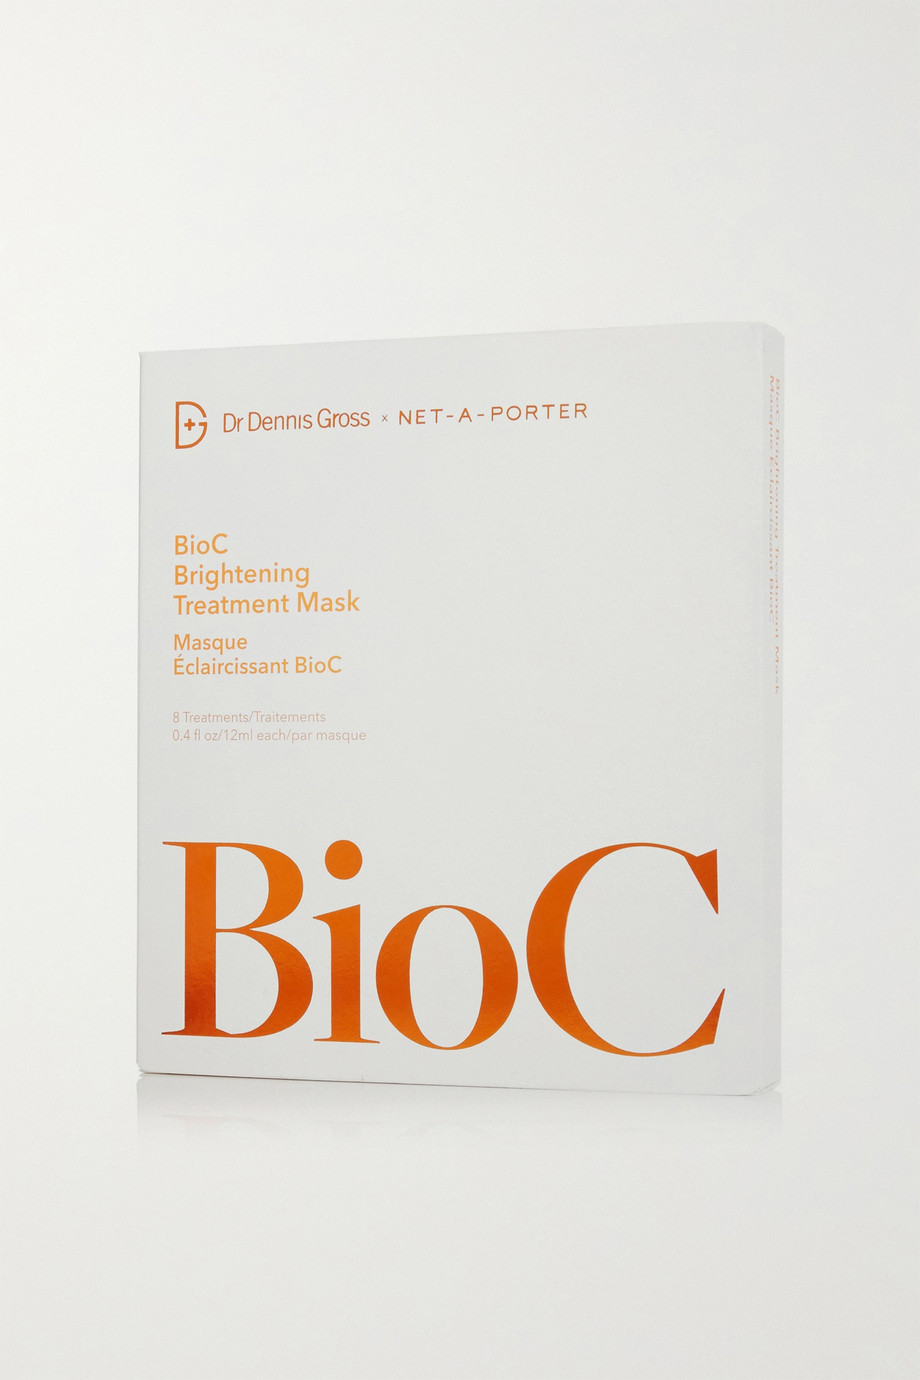 Dr. Dennis Gross Skincare BioC Brightening Treatment Mask x 8